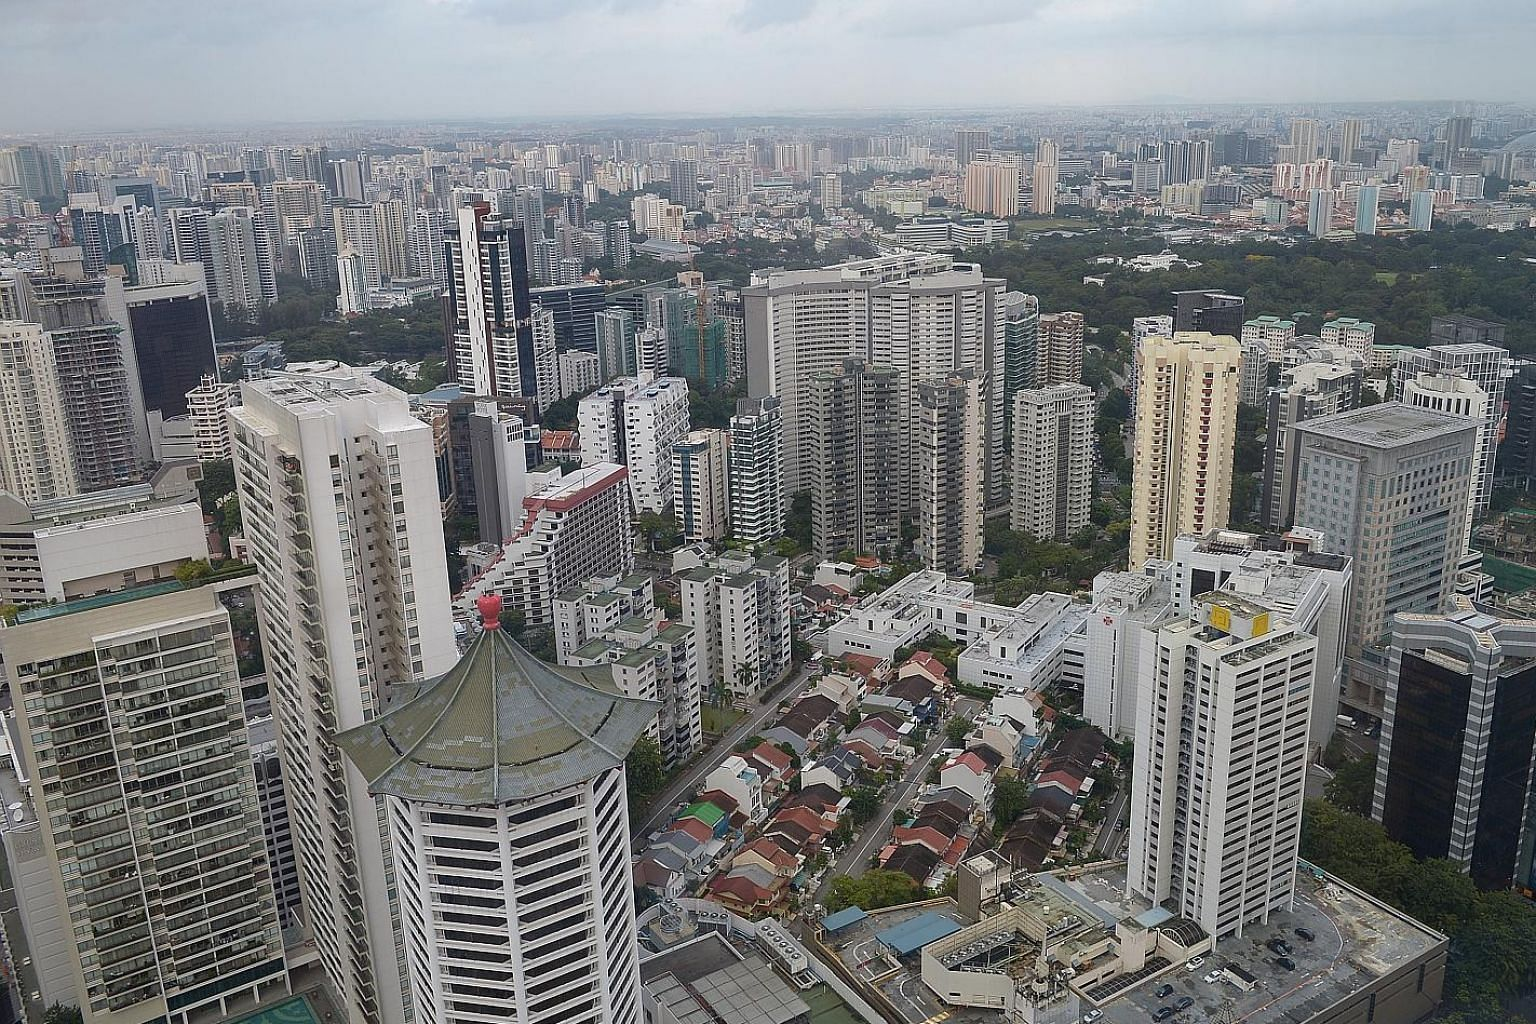 The resale prices of units in the city fringe or Rest of Central Region fell 1.6 per cent from July, while those in the prime district or Core Central Region fell 0.3 per cent. These are homes more likely bought for investment or speculative purposes